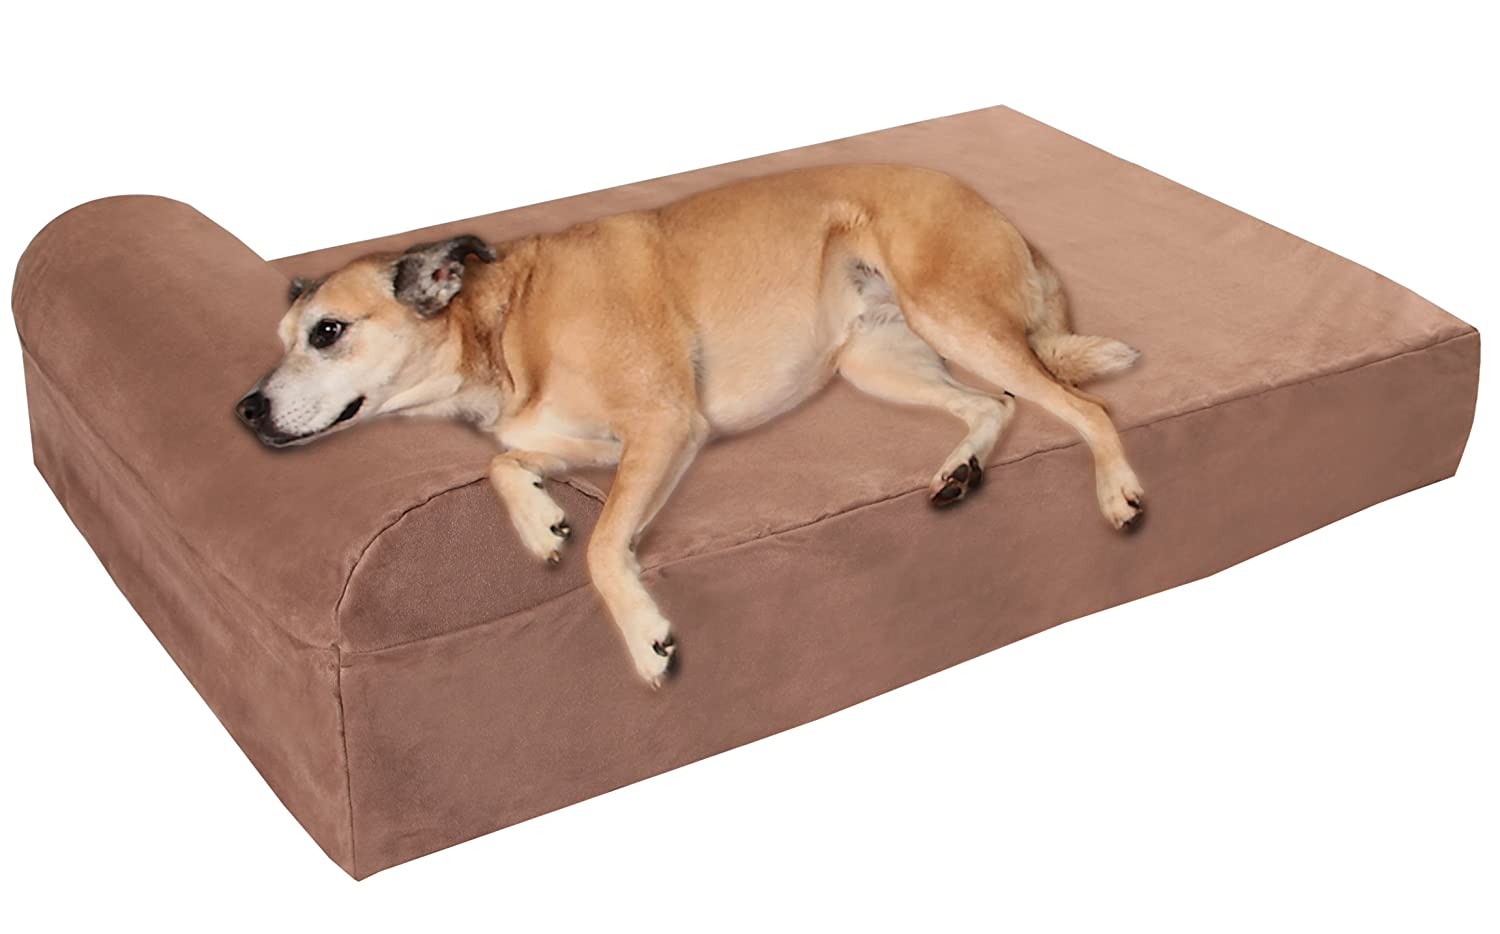 The Best Dog Beds You Can Buy Online